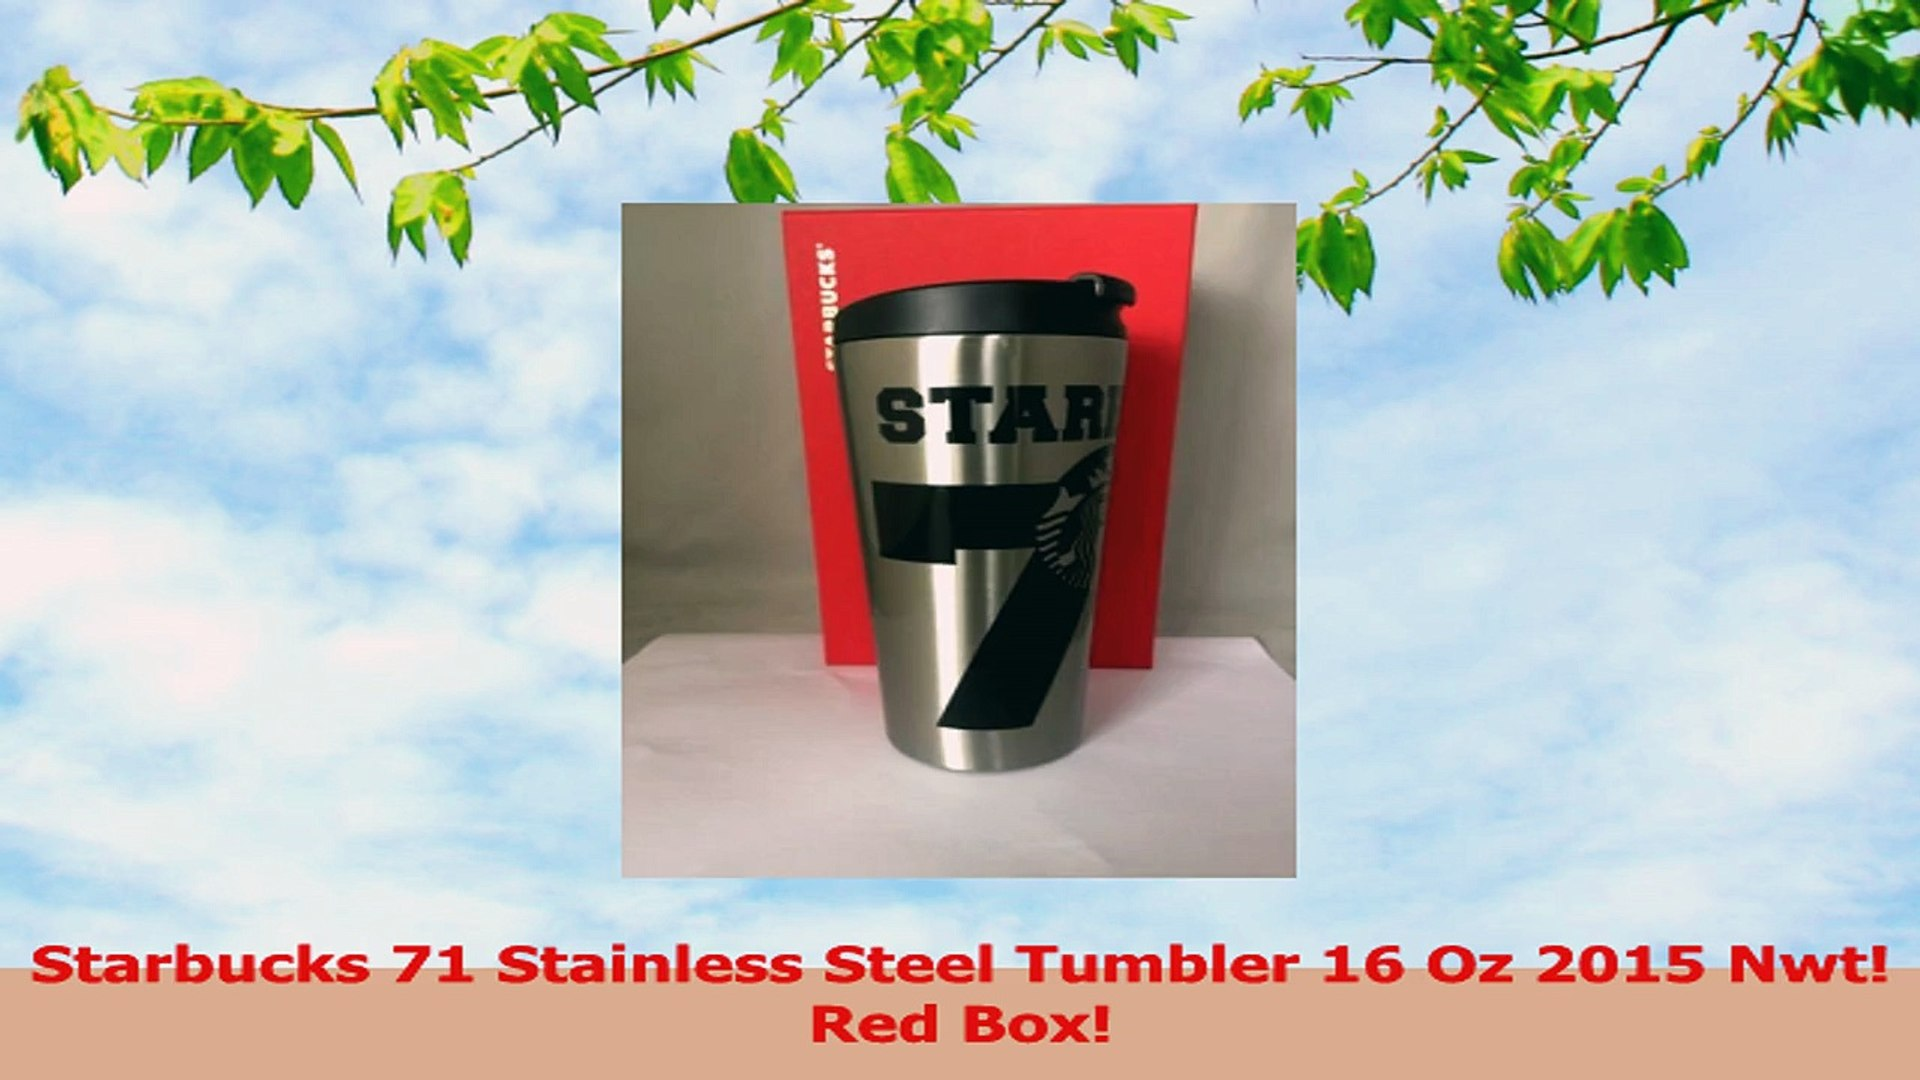 3ccb52f7f94 Starbucks 71 Stainless Steel Tumbler 16 Oz 2015 Nwt Red Box 6282b4e1 ...